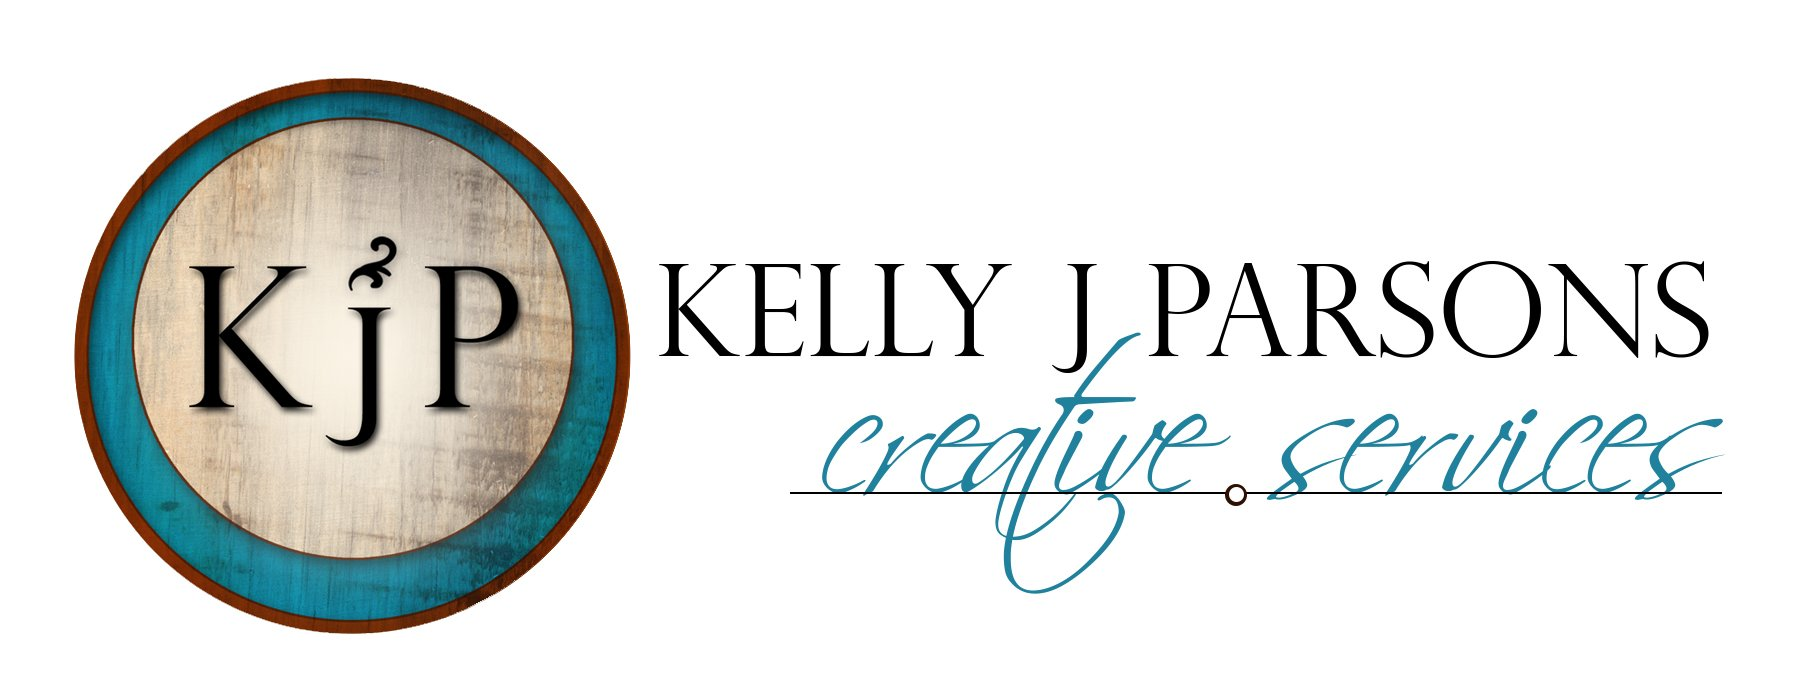 Kelly J Parsons Creative Services